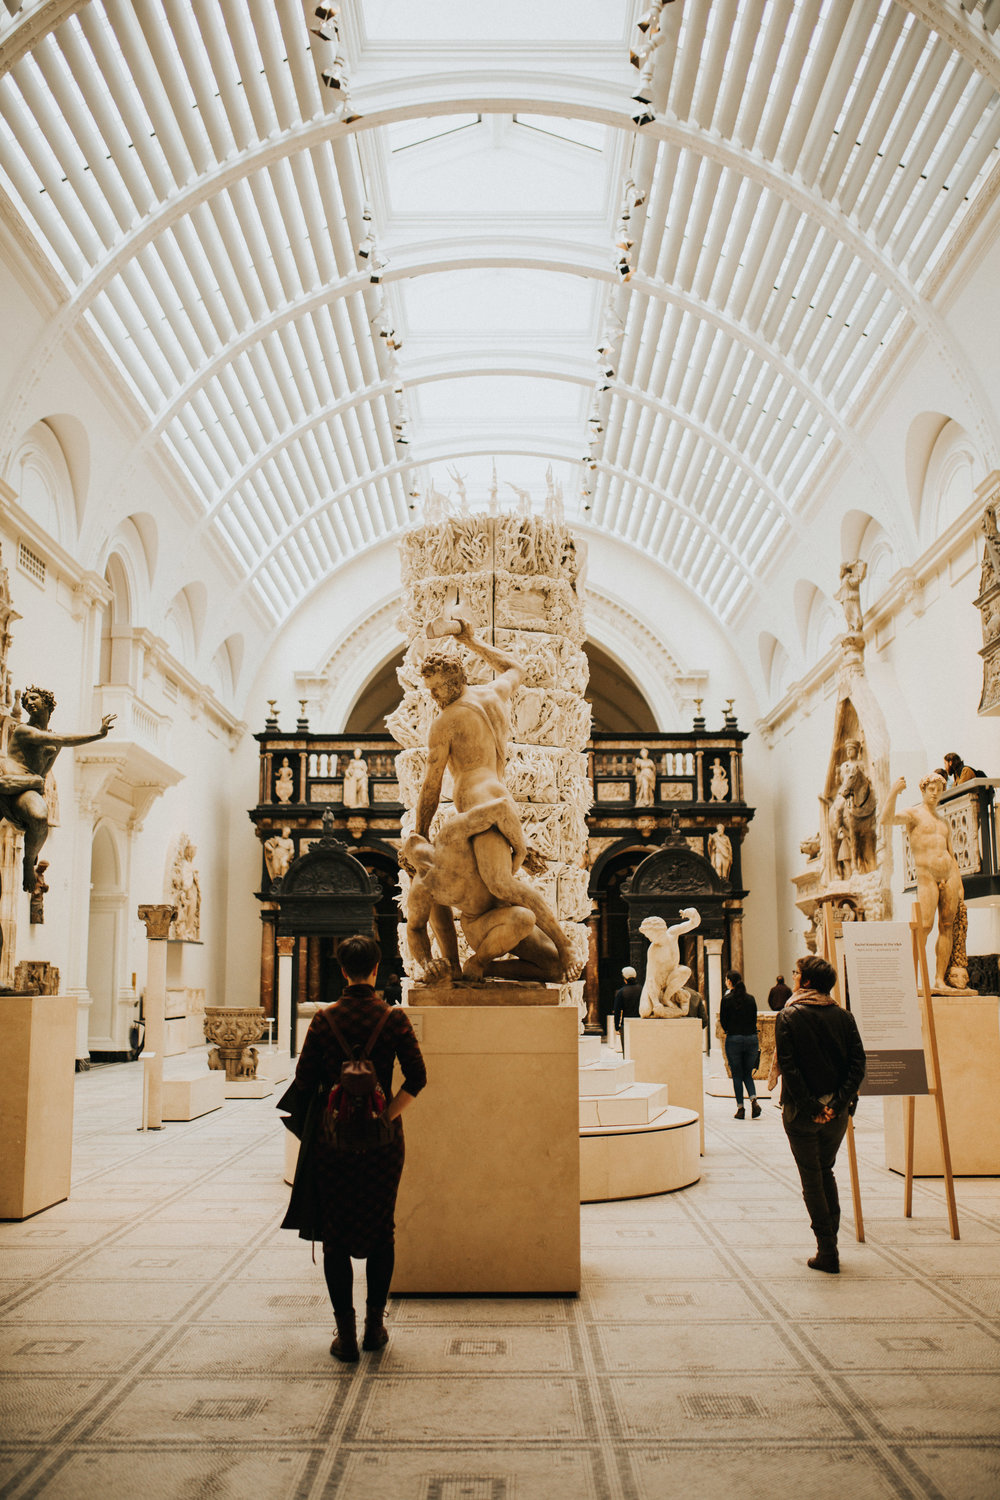 Victoria & Albert Museum - https://www.vam.ac.uk/